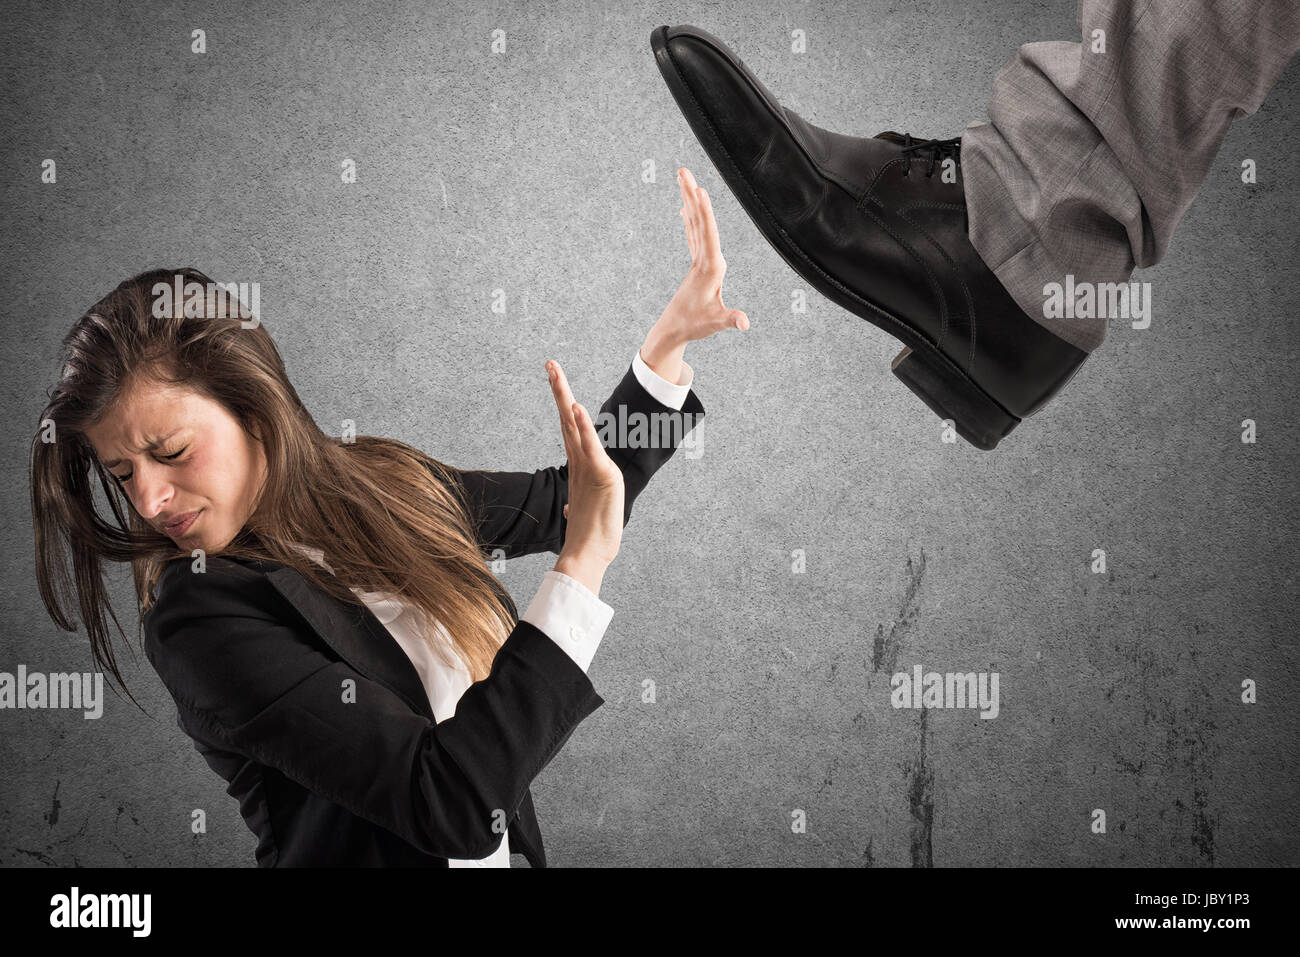 Aggressive boss .Mobbing concept - Stock Image